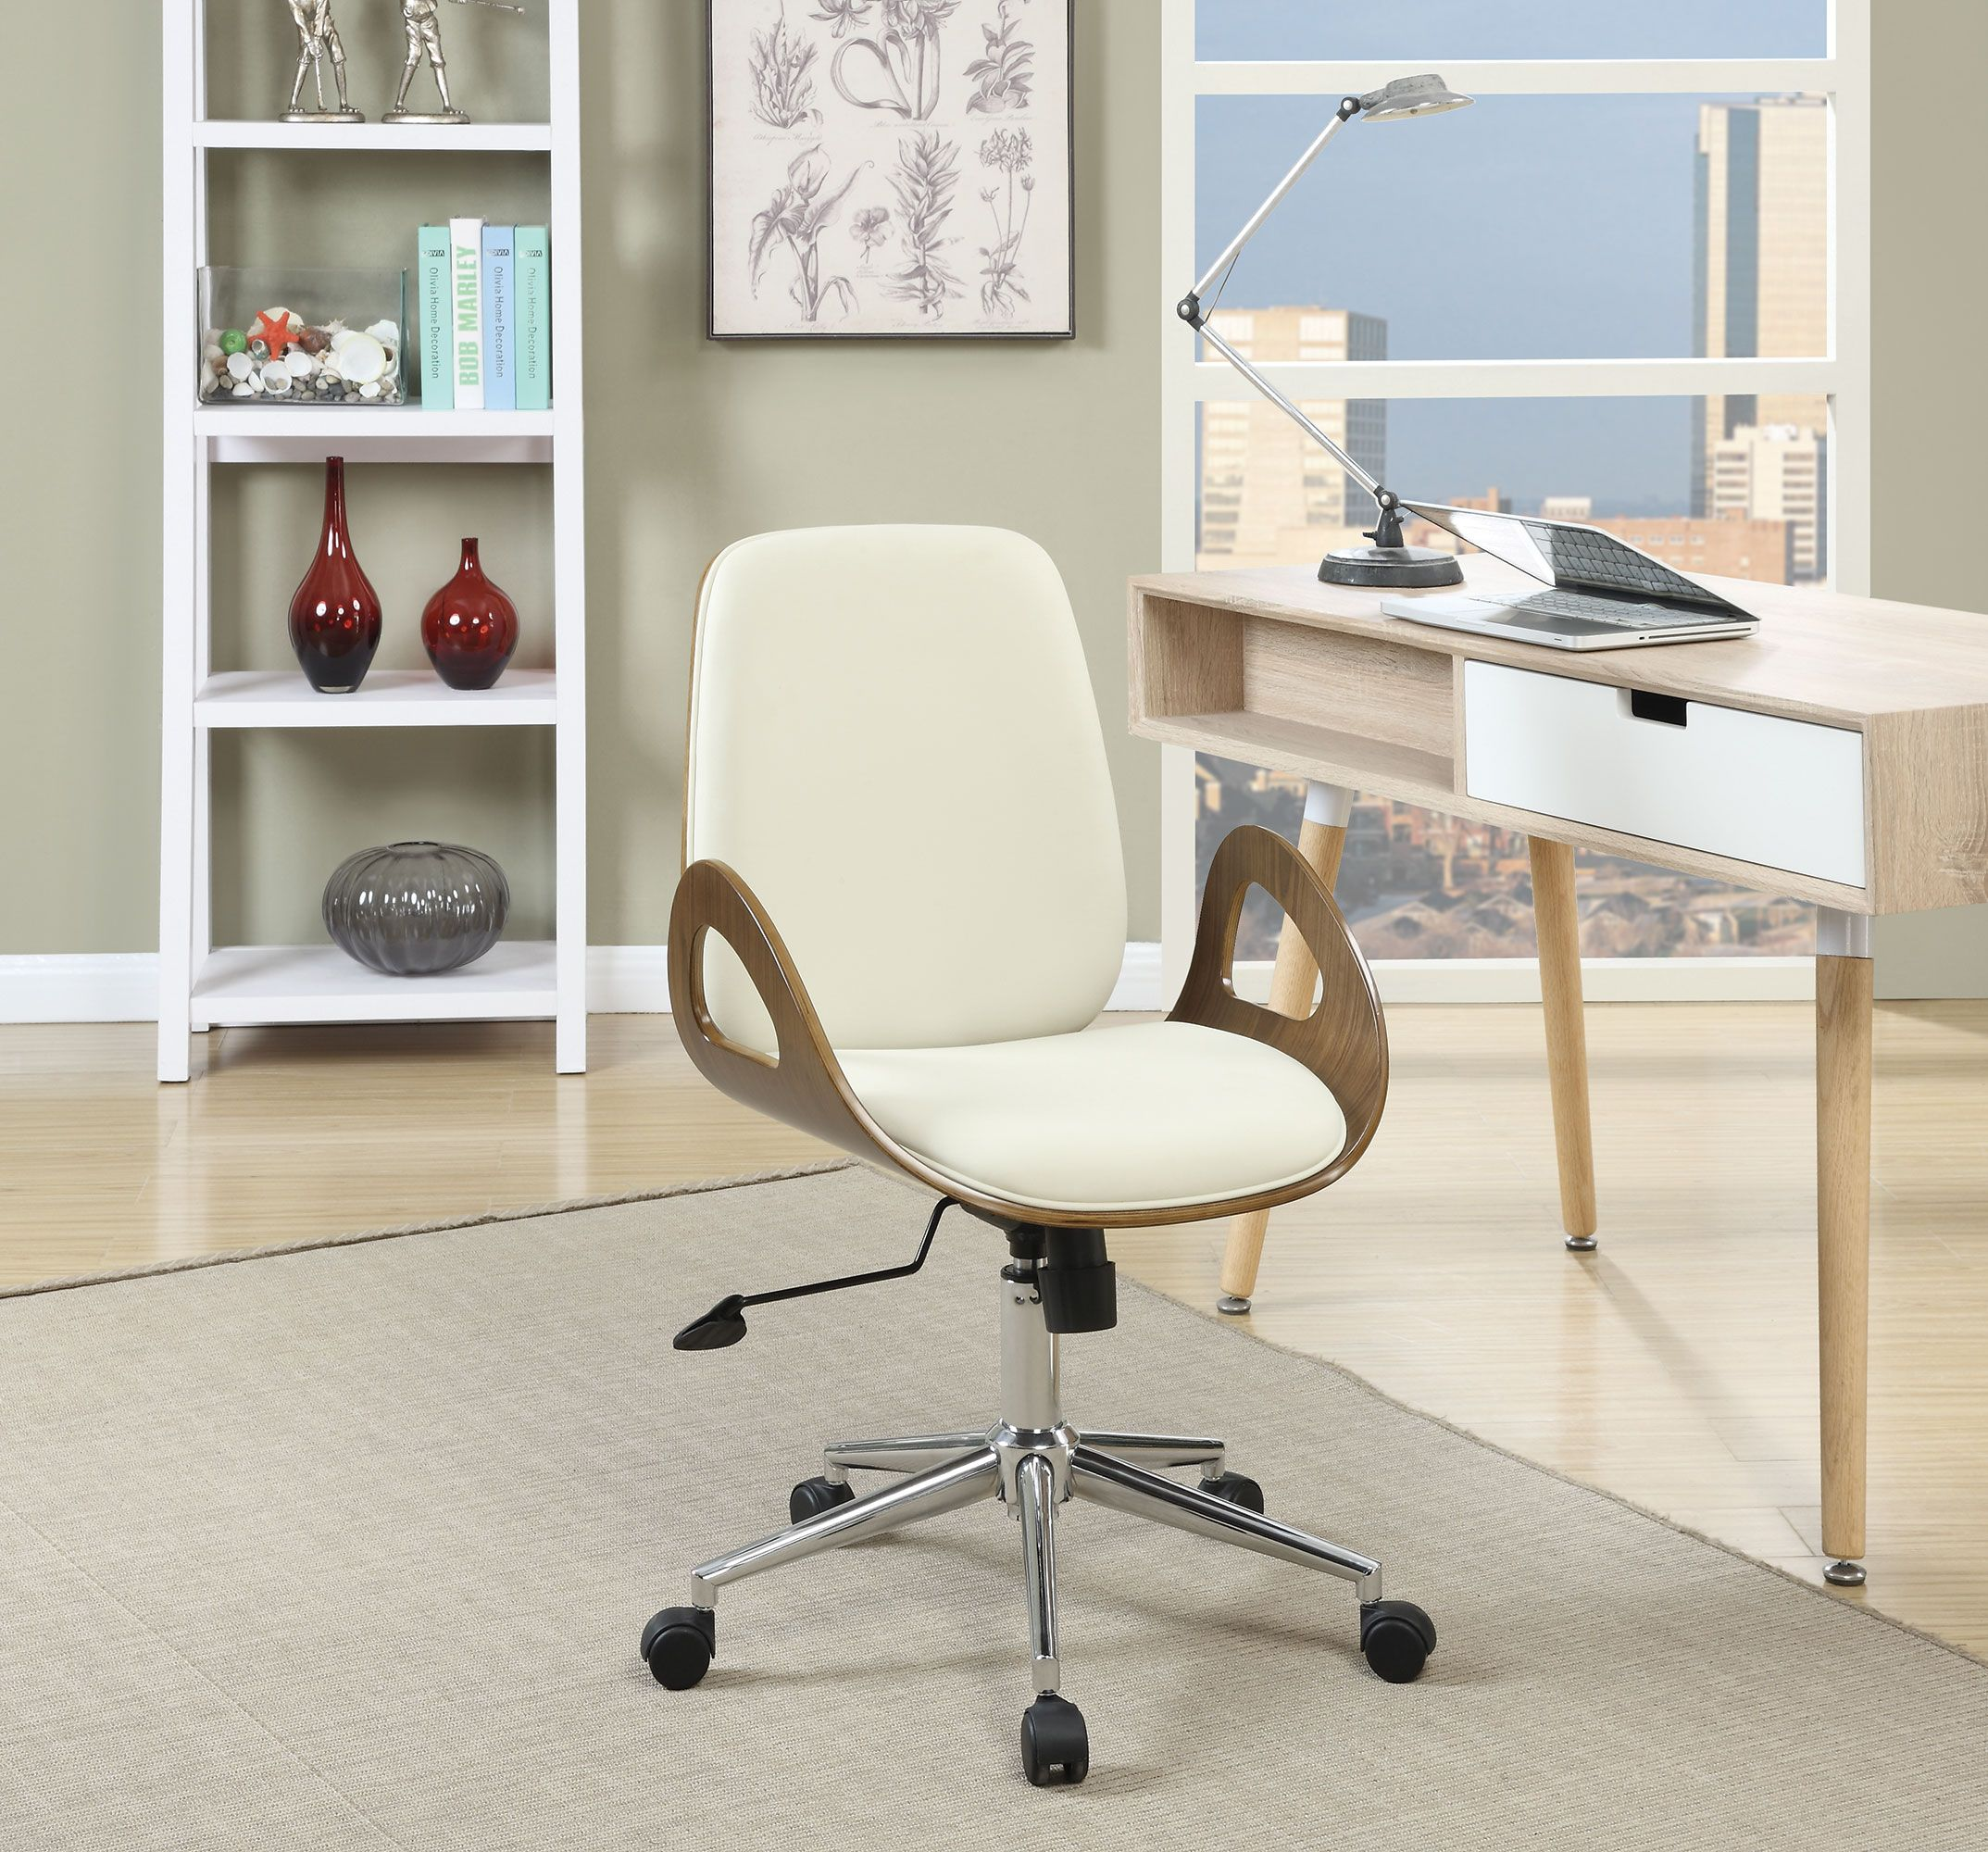 Coaster 800737 Mid Century Modern White Walnut Chrome Office Chair Furniture Blue Chairs Living Room Chair